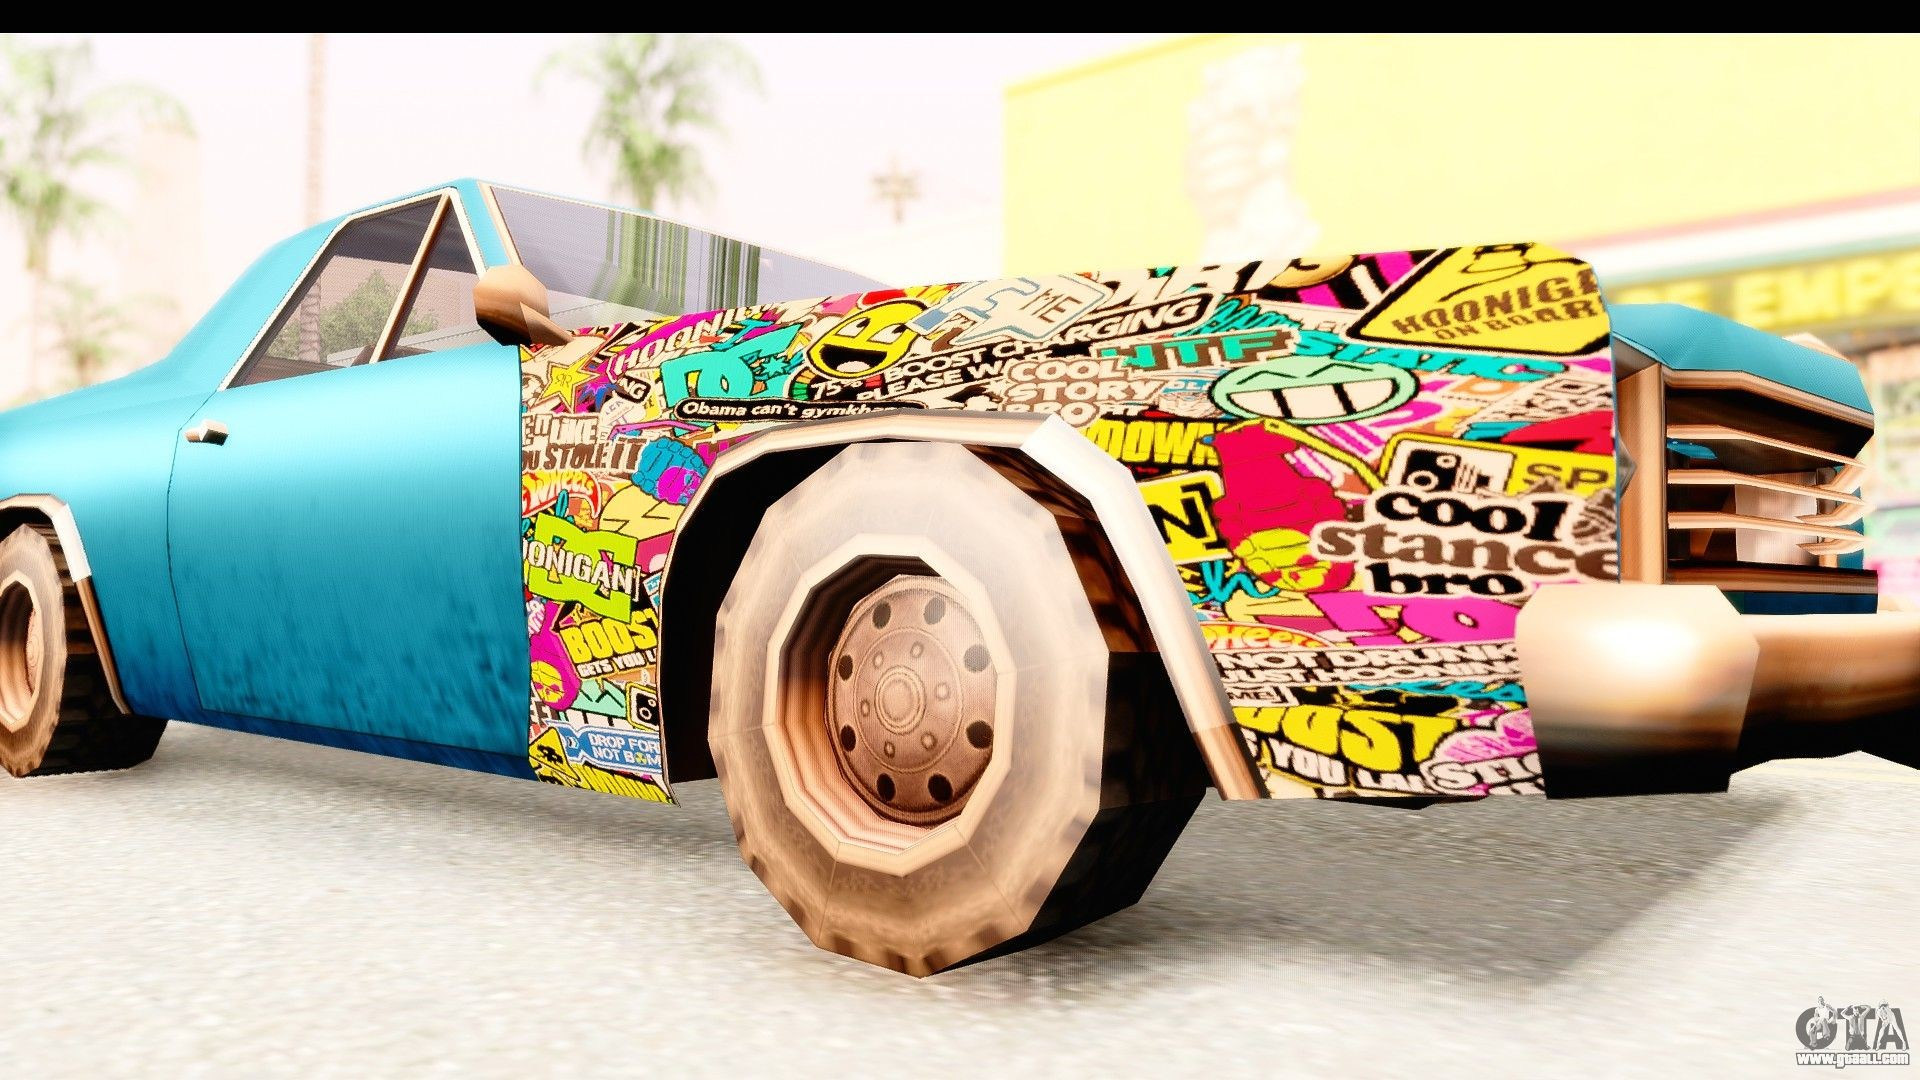 Picador Sticker Bomb for GTA San Andreas back view .